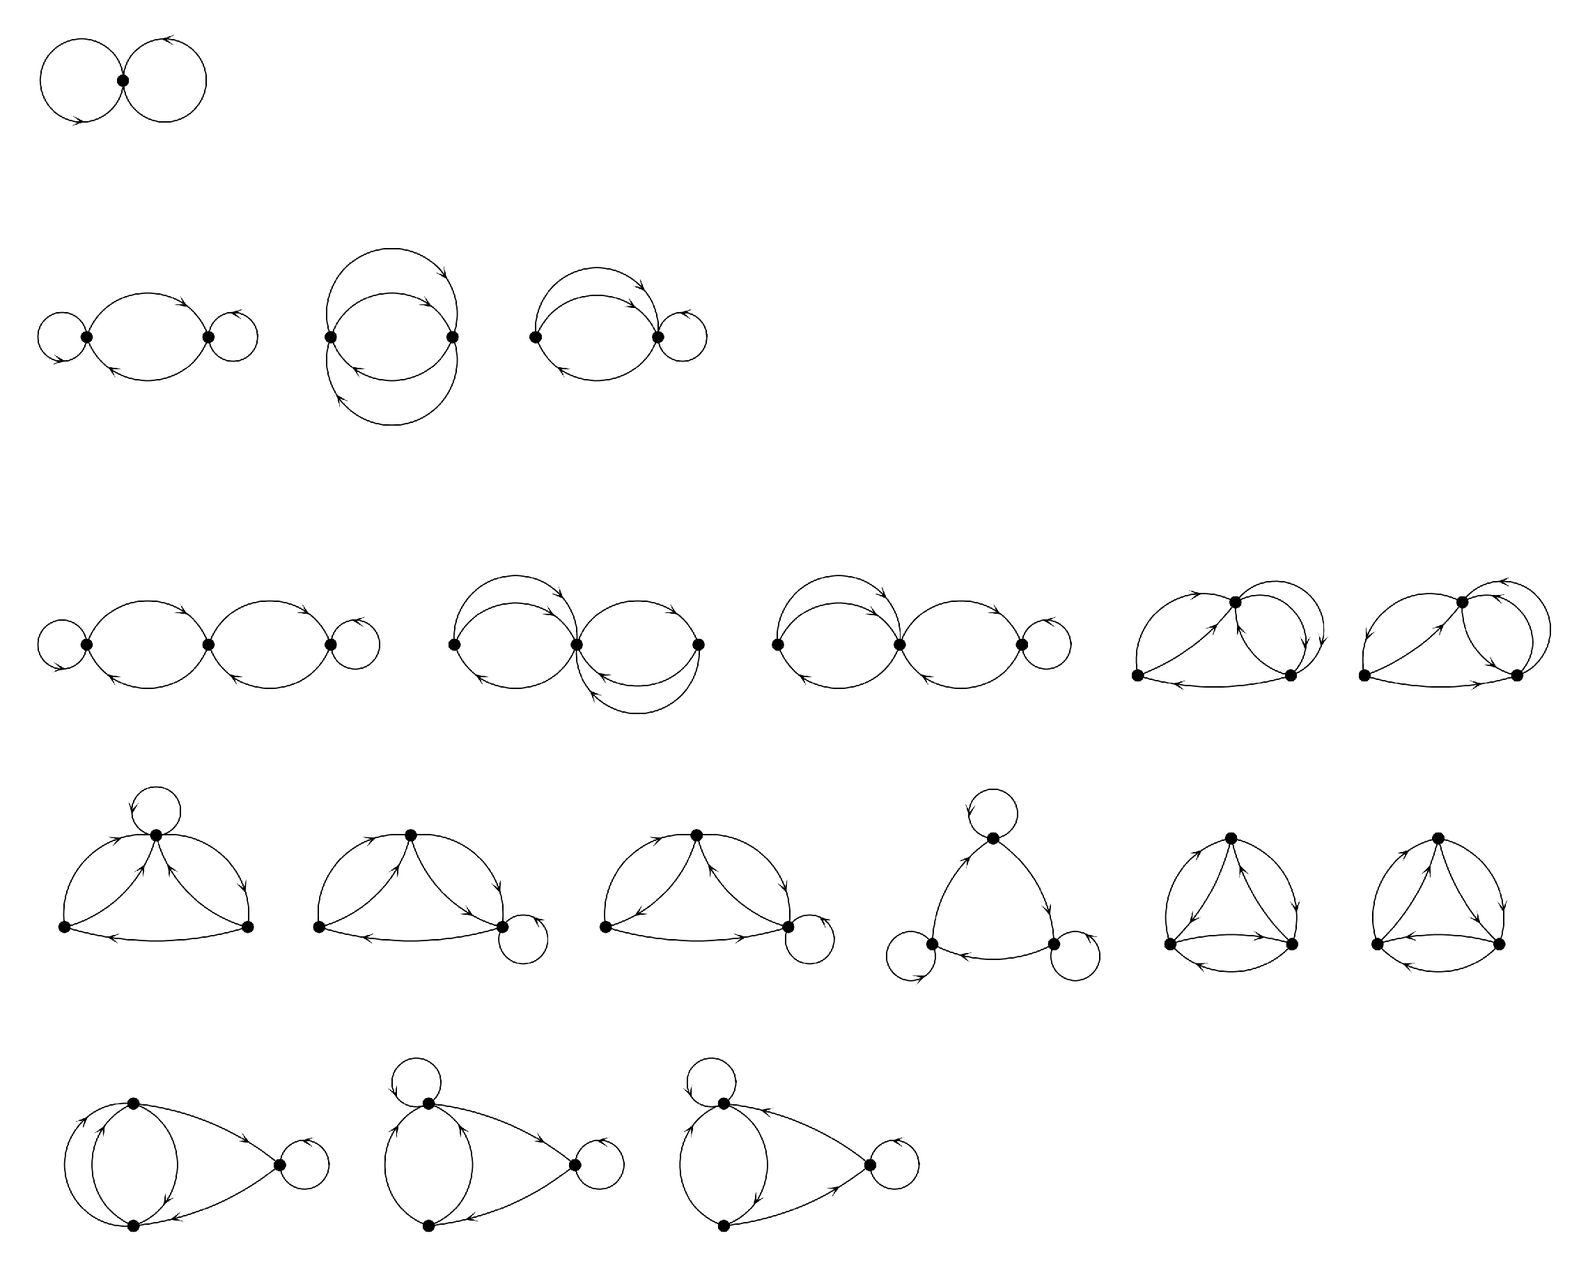 Possible networks with one, two or three nodes